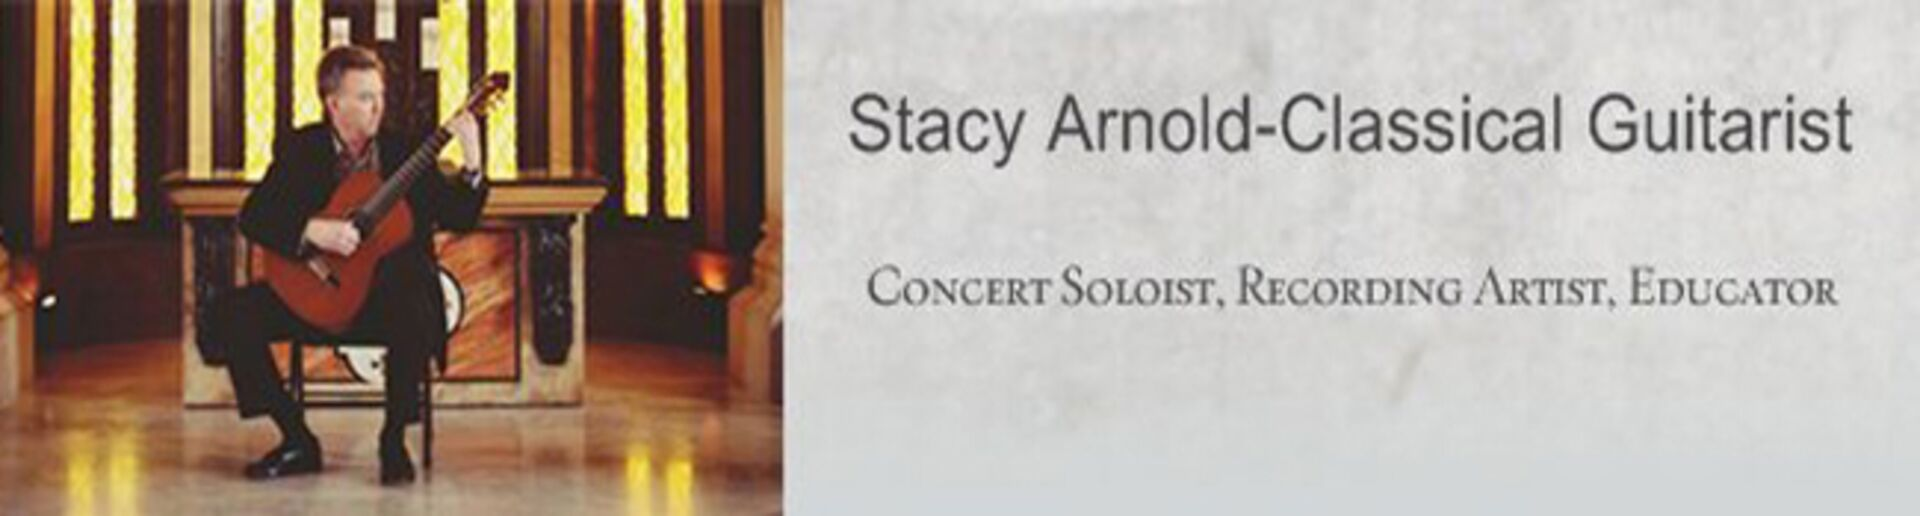 Stacy Arnold-Classical Guitarist